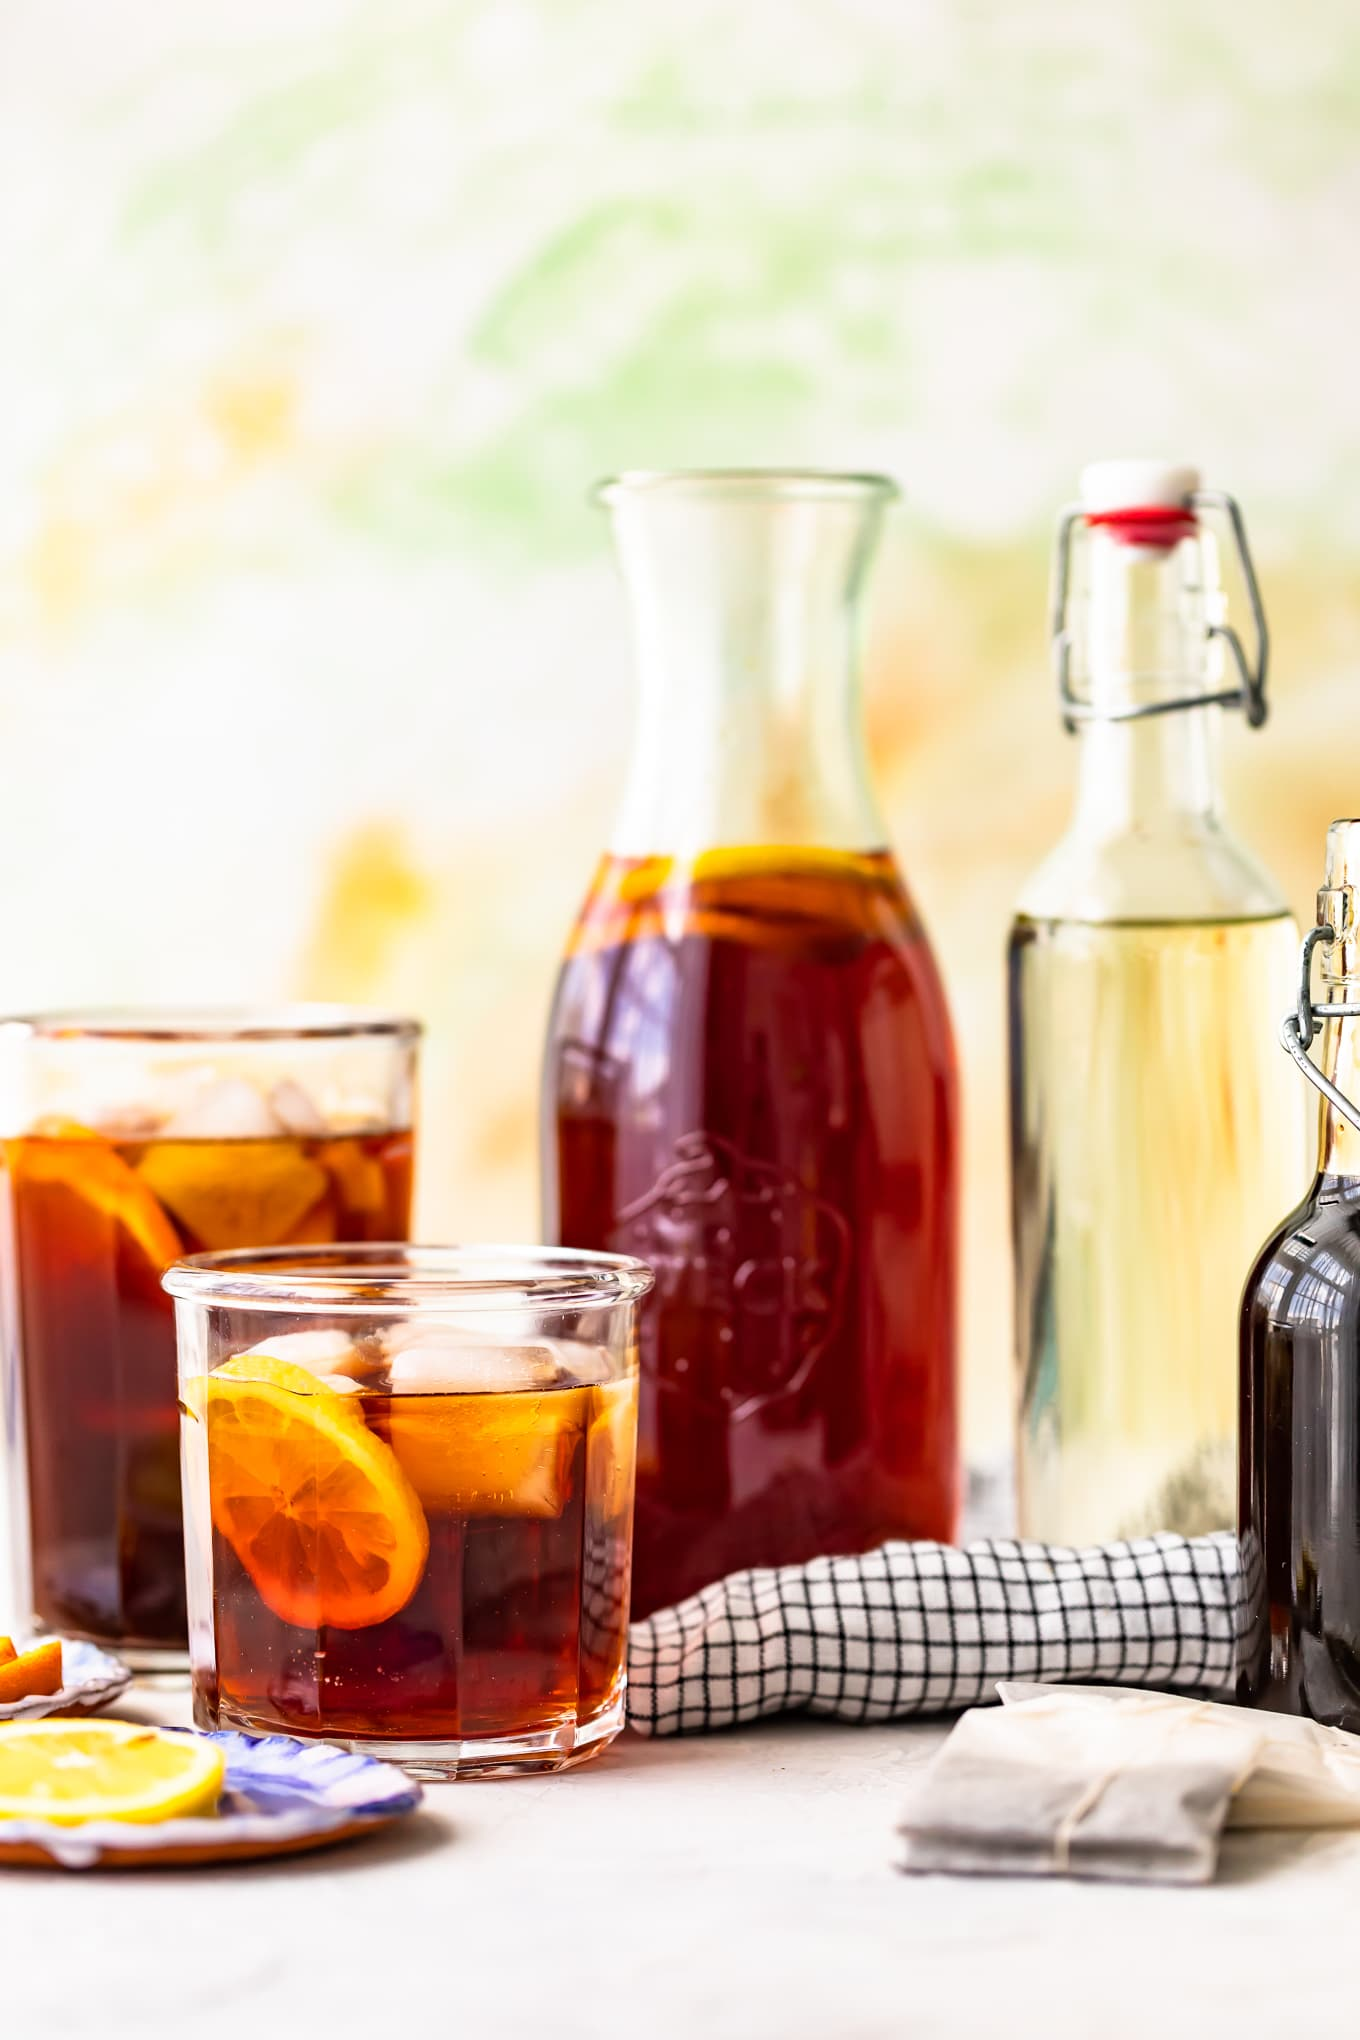 Glasses of homemade sweet iced tea with garnish